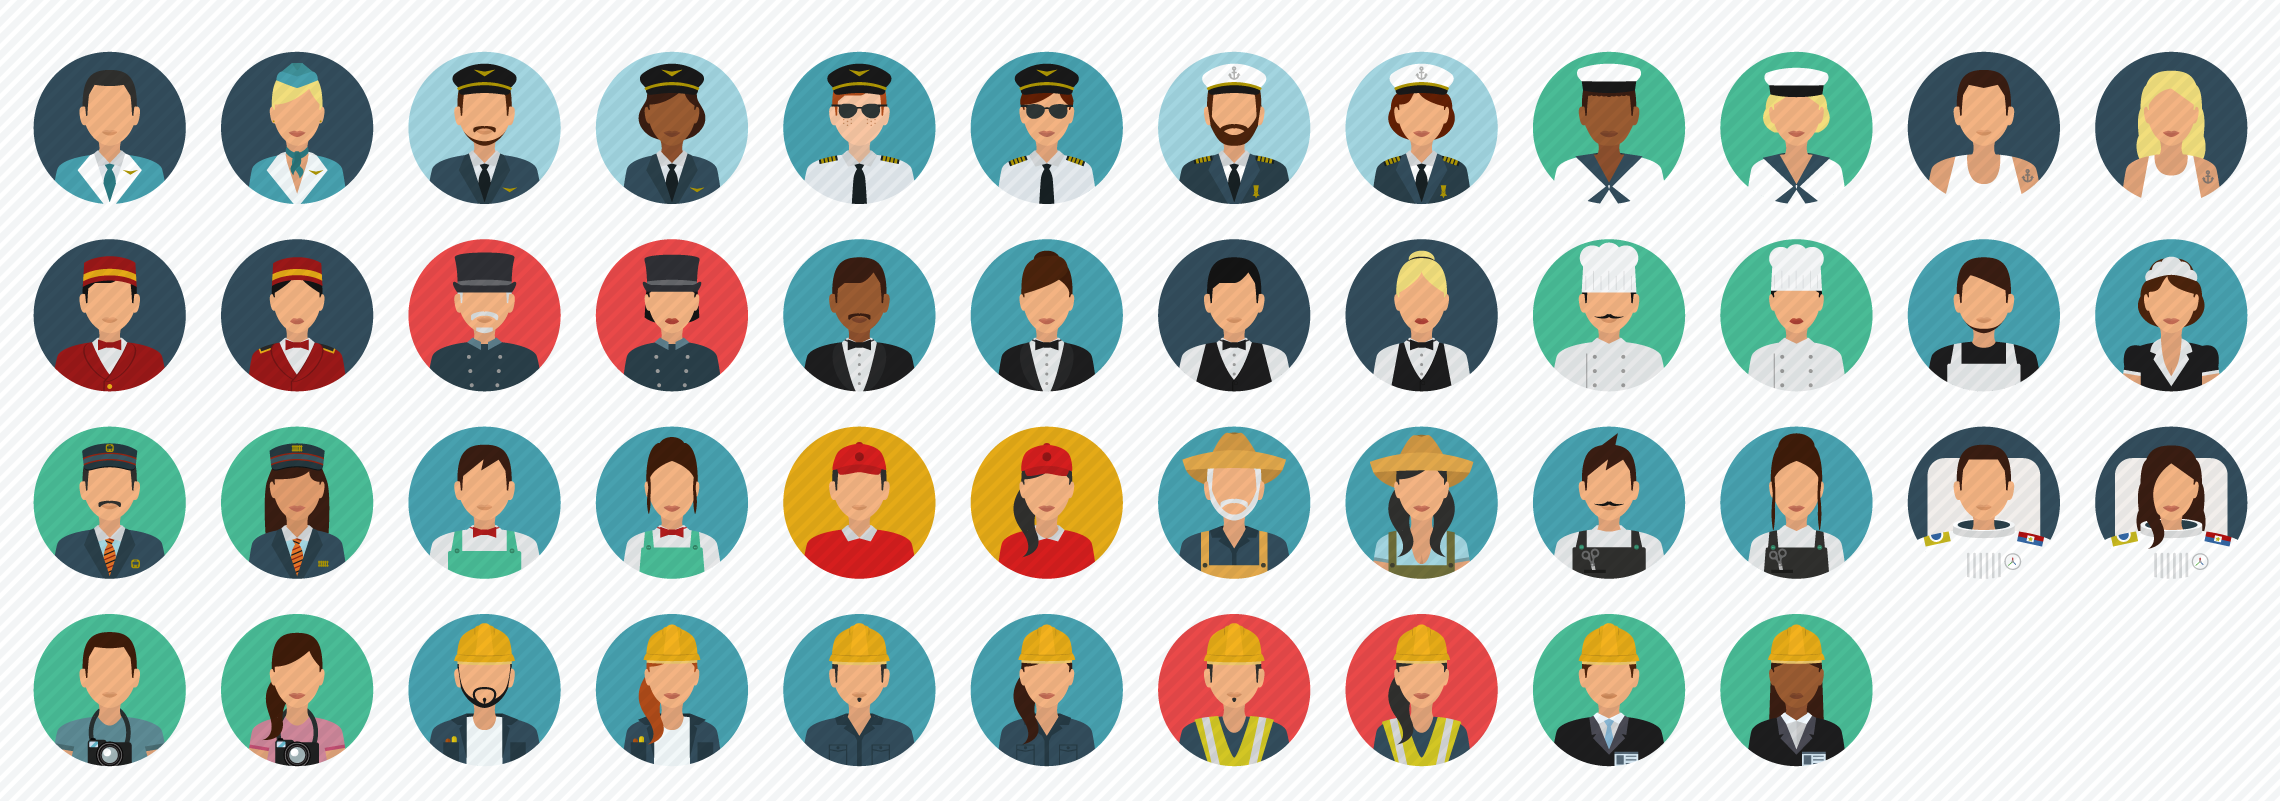 Avatars_Services flat icons